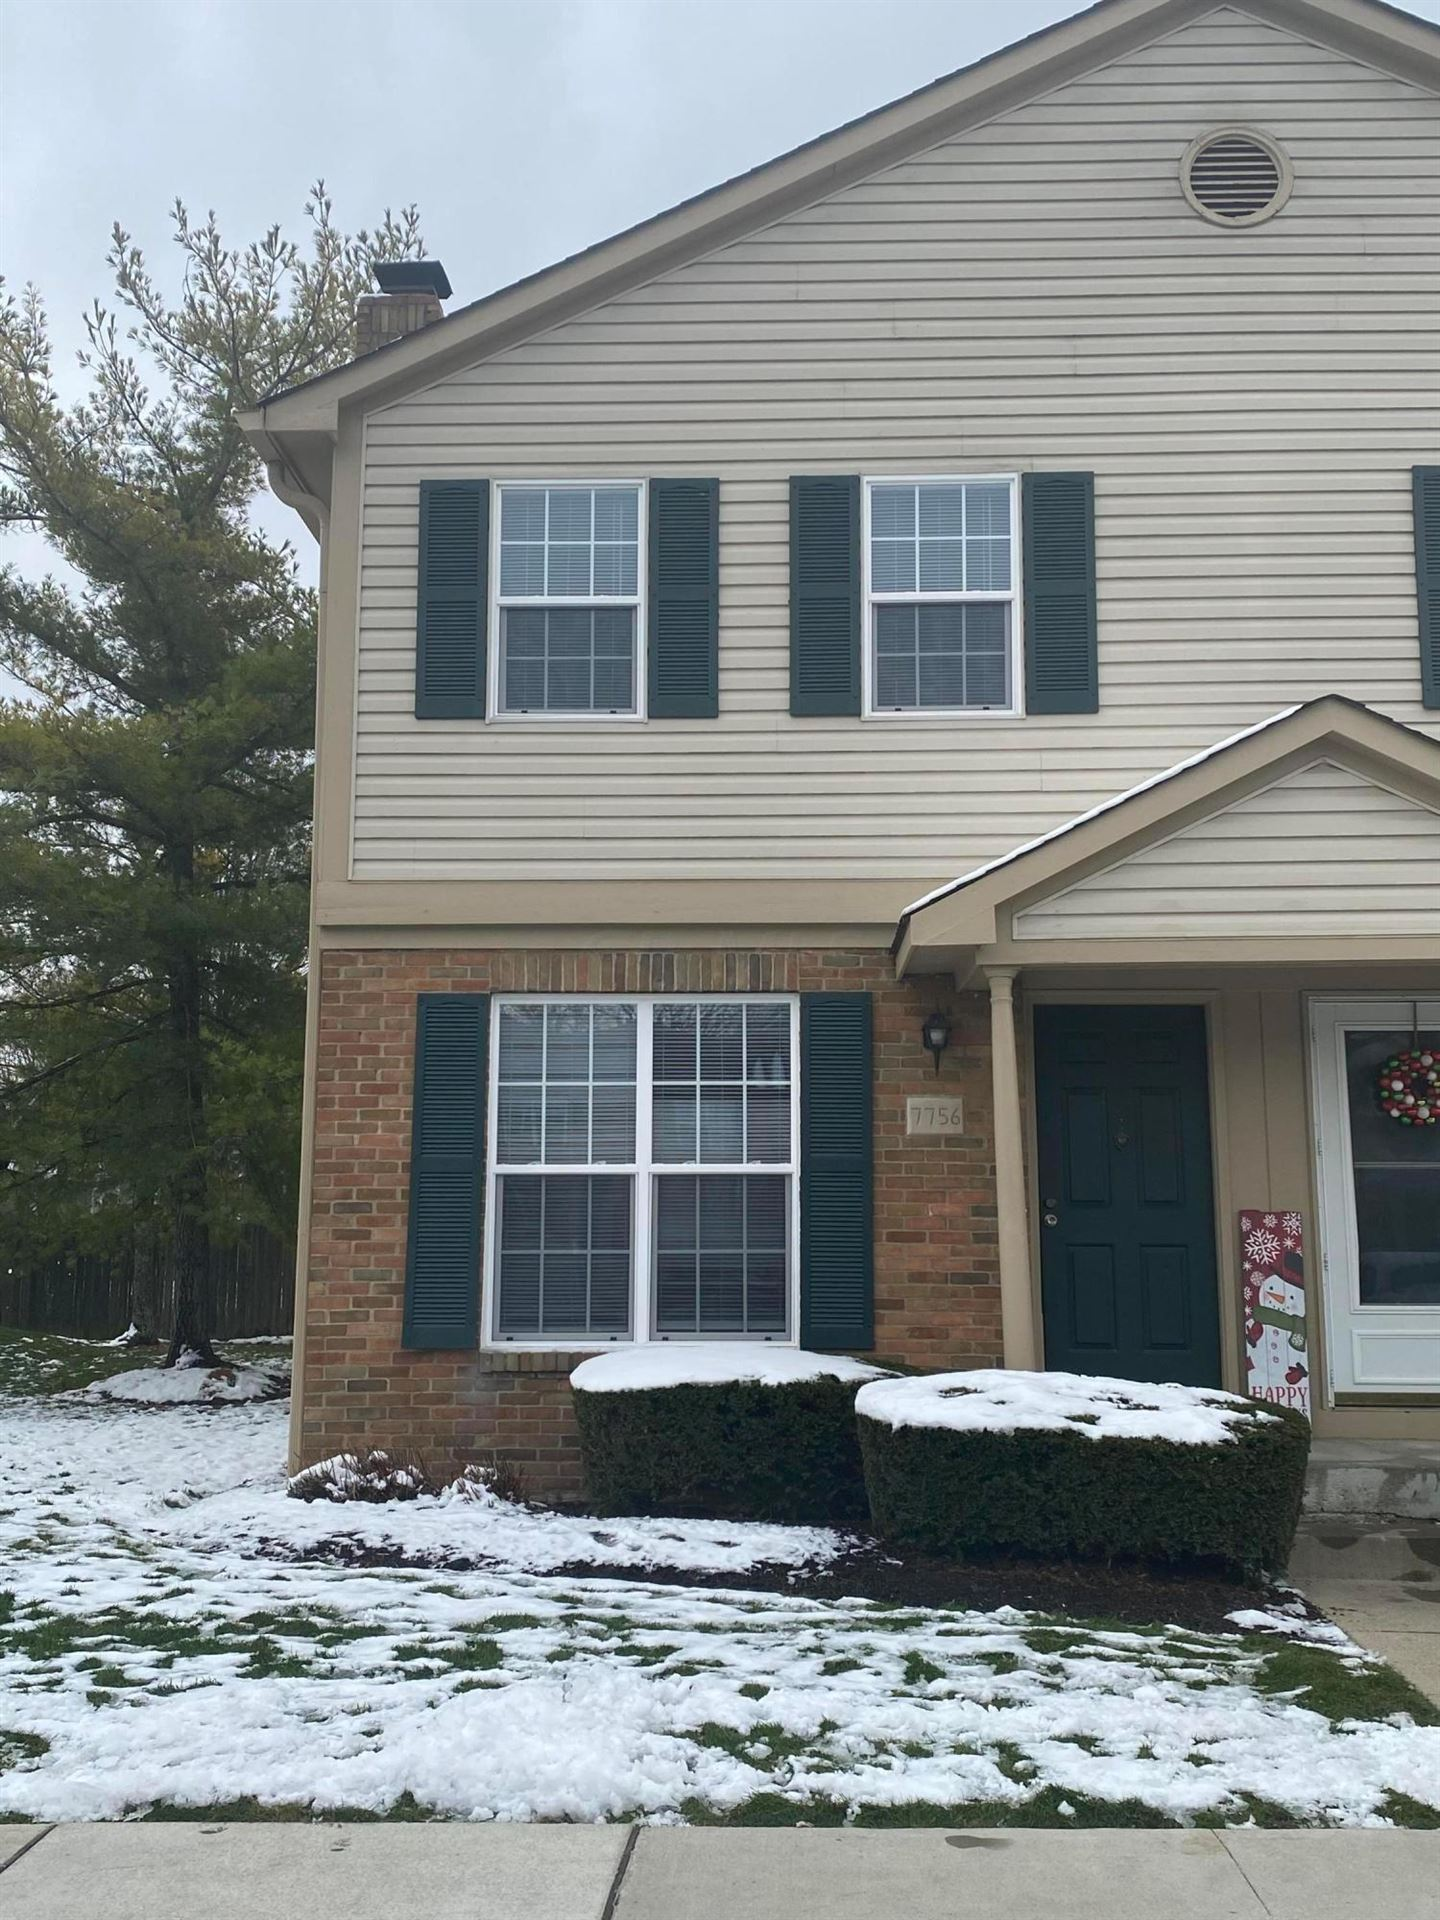 Photo of 7756 Willowcove Court, Dublin, OH 43016 (MLS # 220042055)